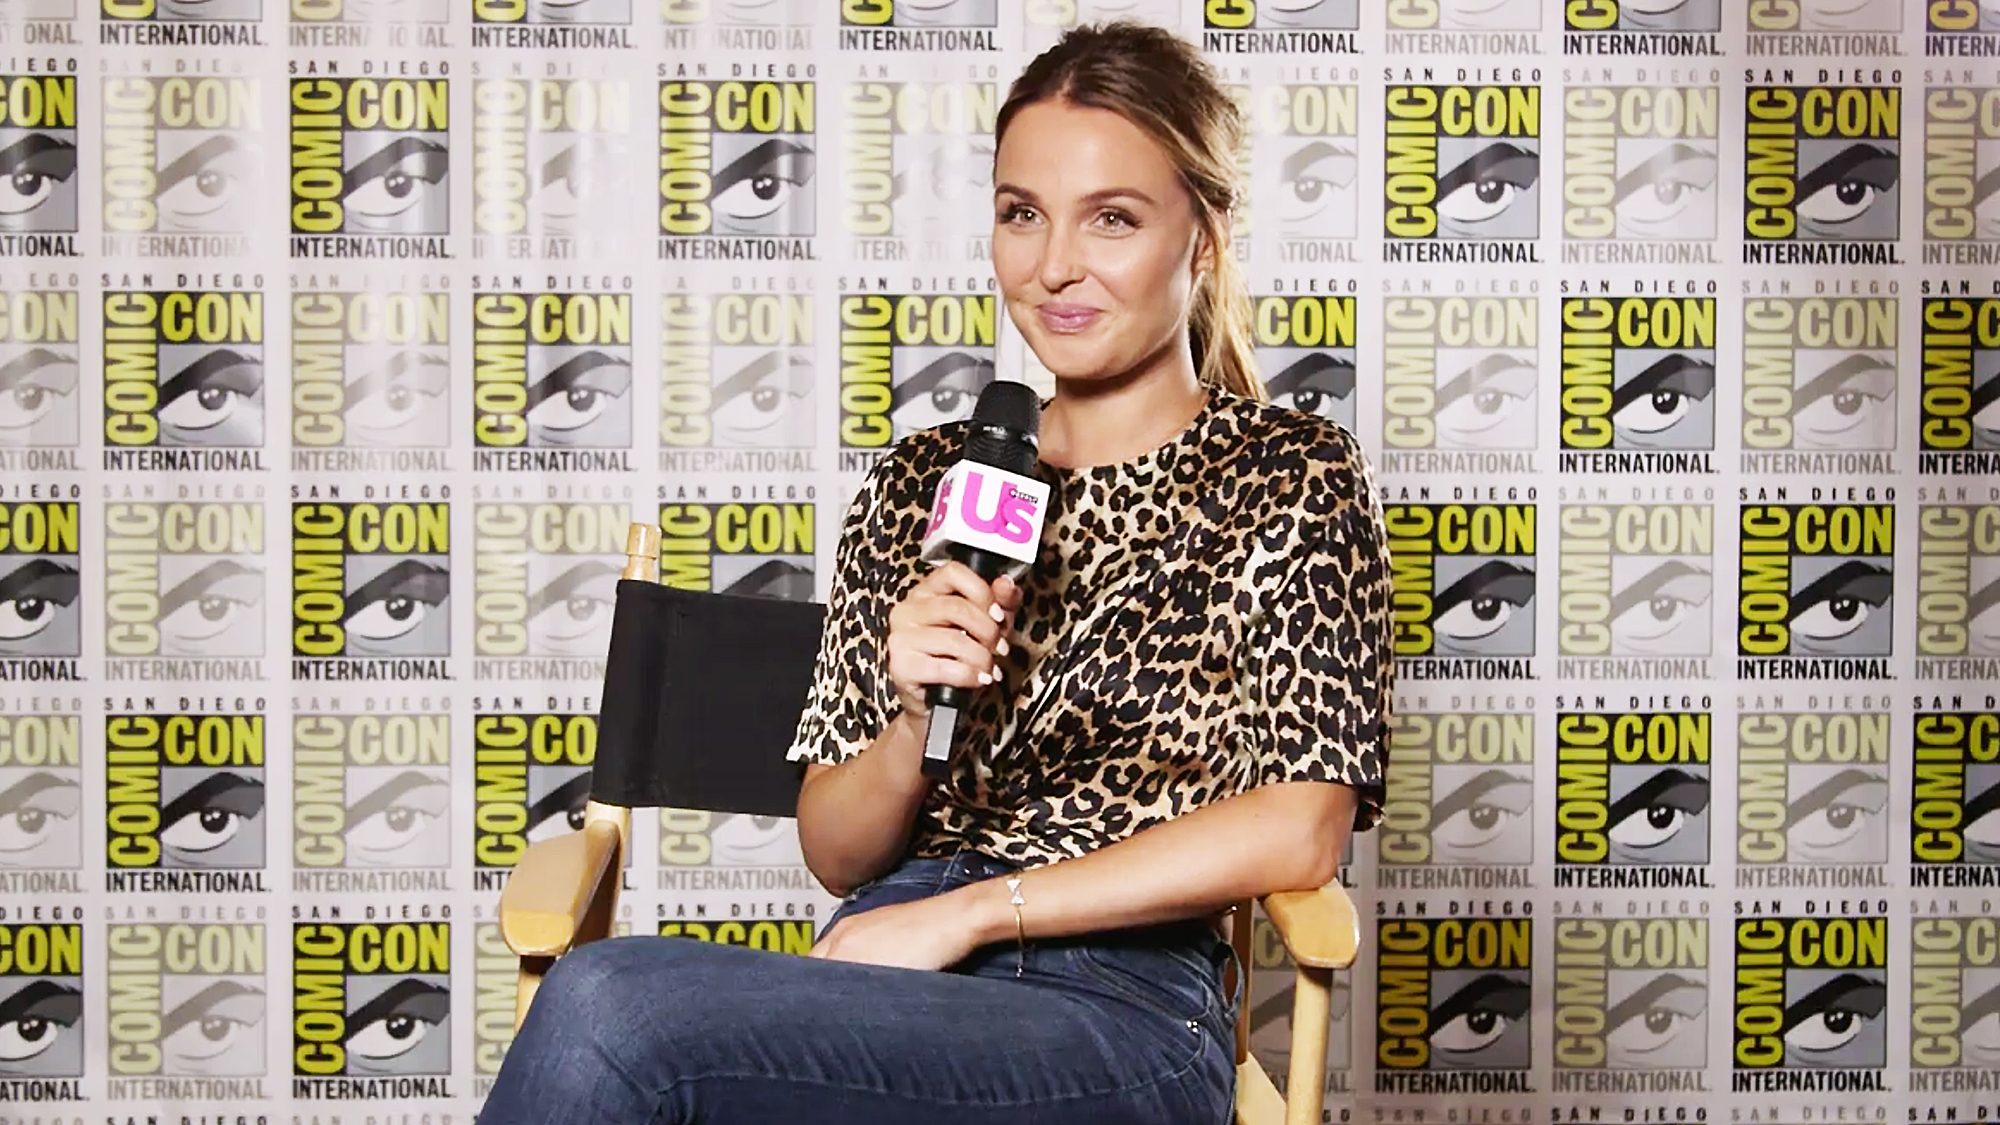 Camilla Luddington Jolex Next Steps Grey's Anatomy - Camilla Luddington.